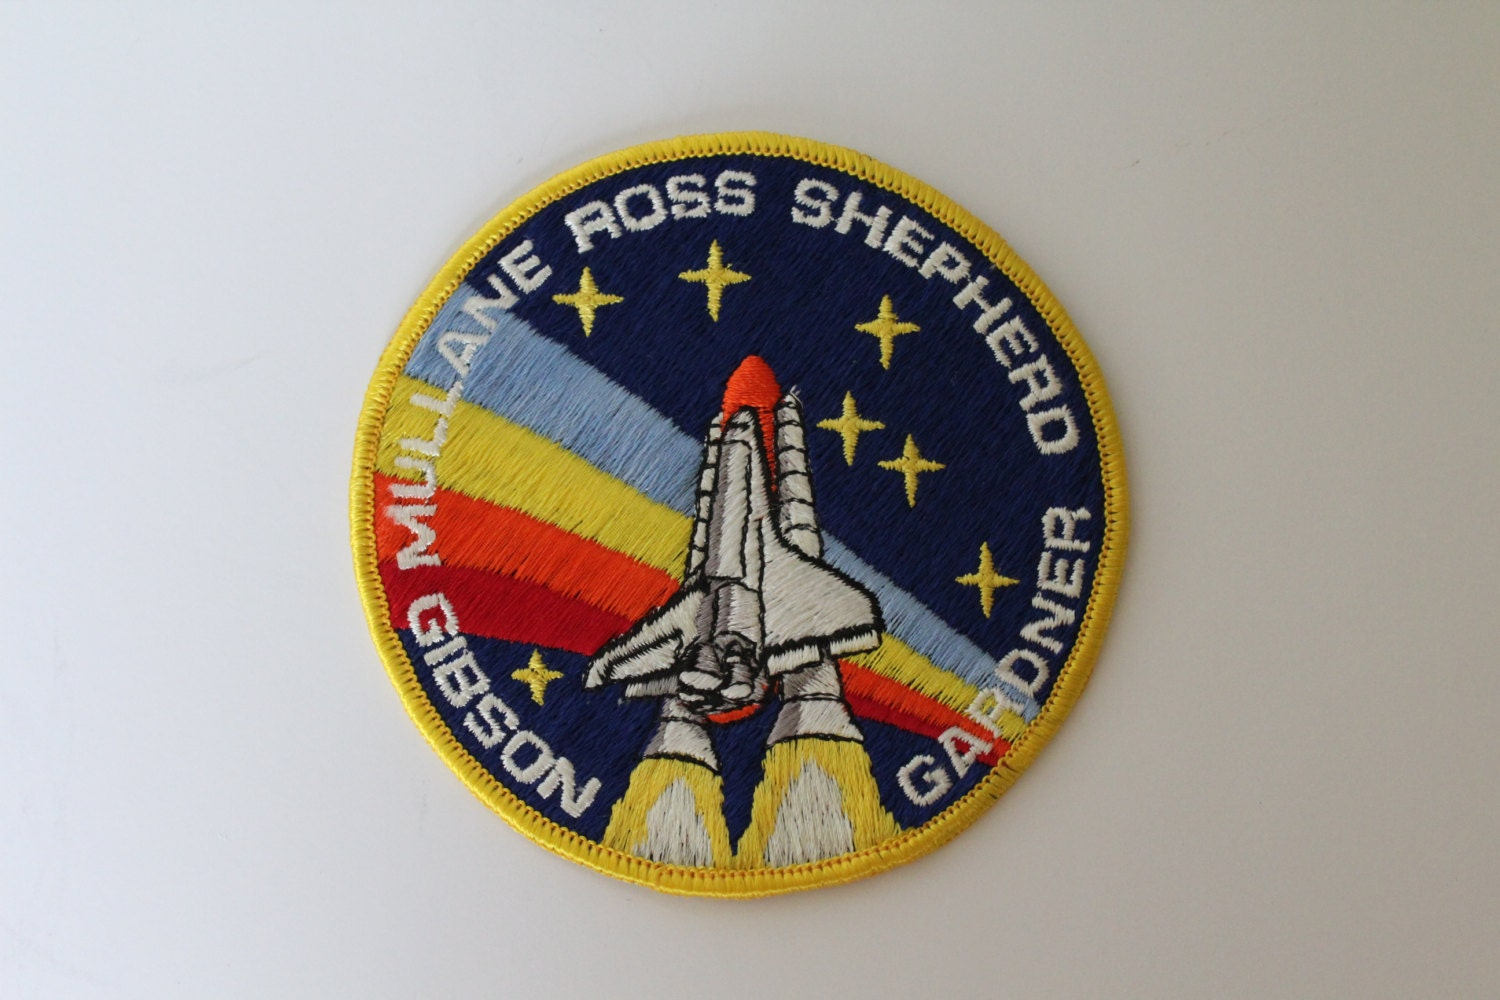 mission space patch 1984 - photo #39